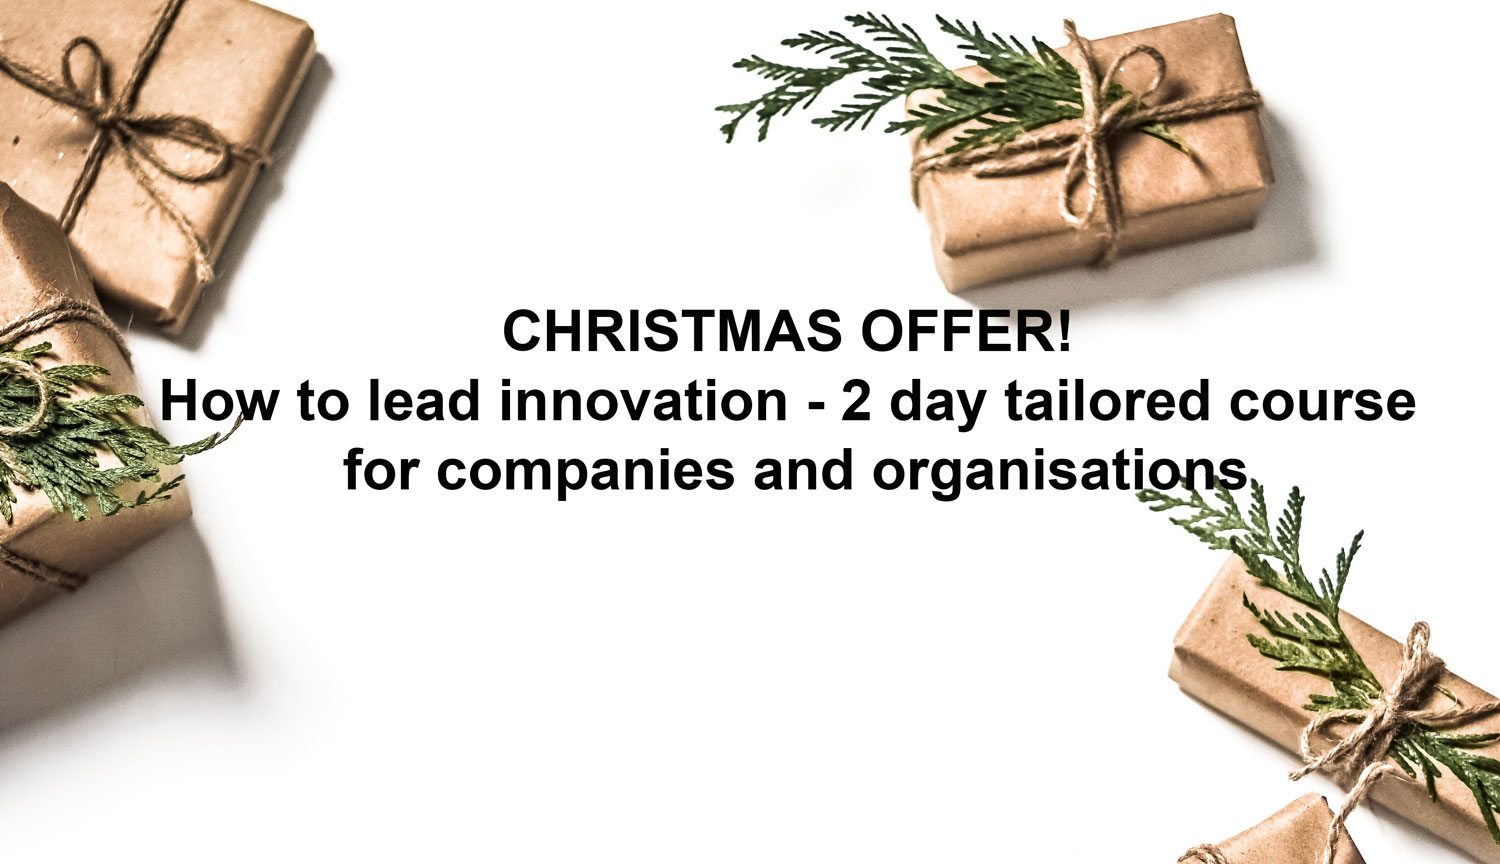 christmas_offer-web.jpg